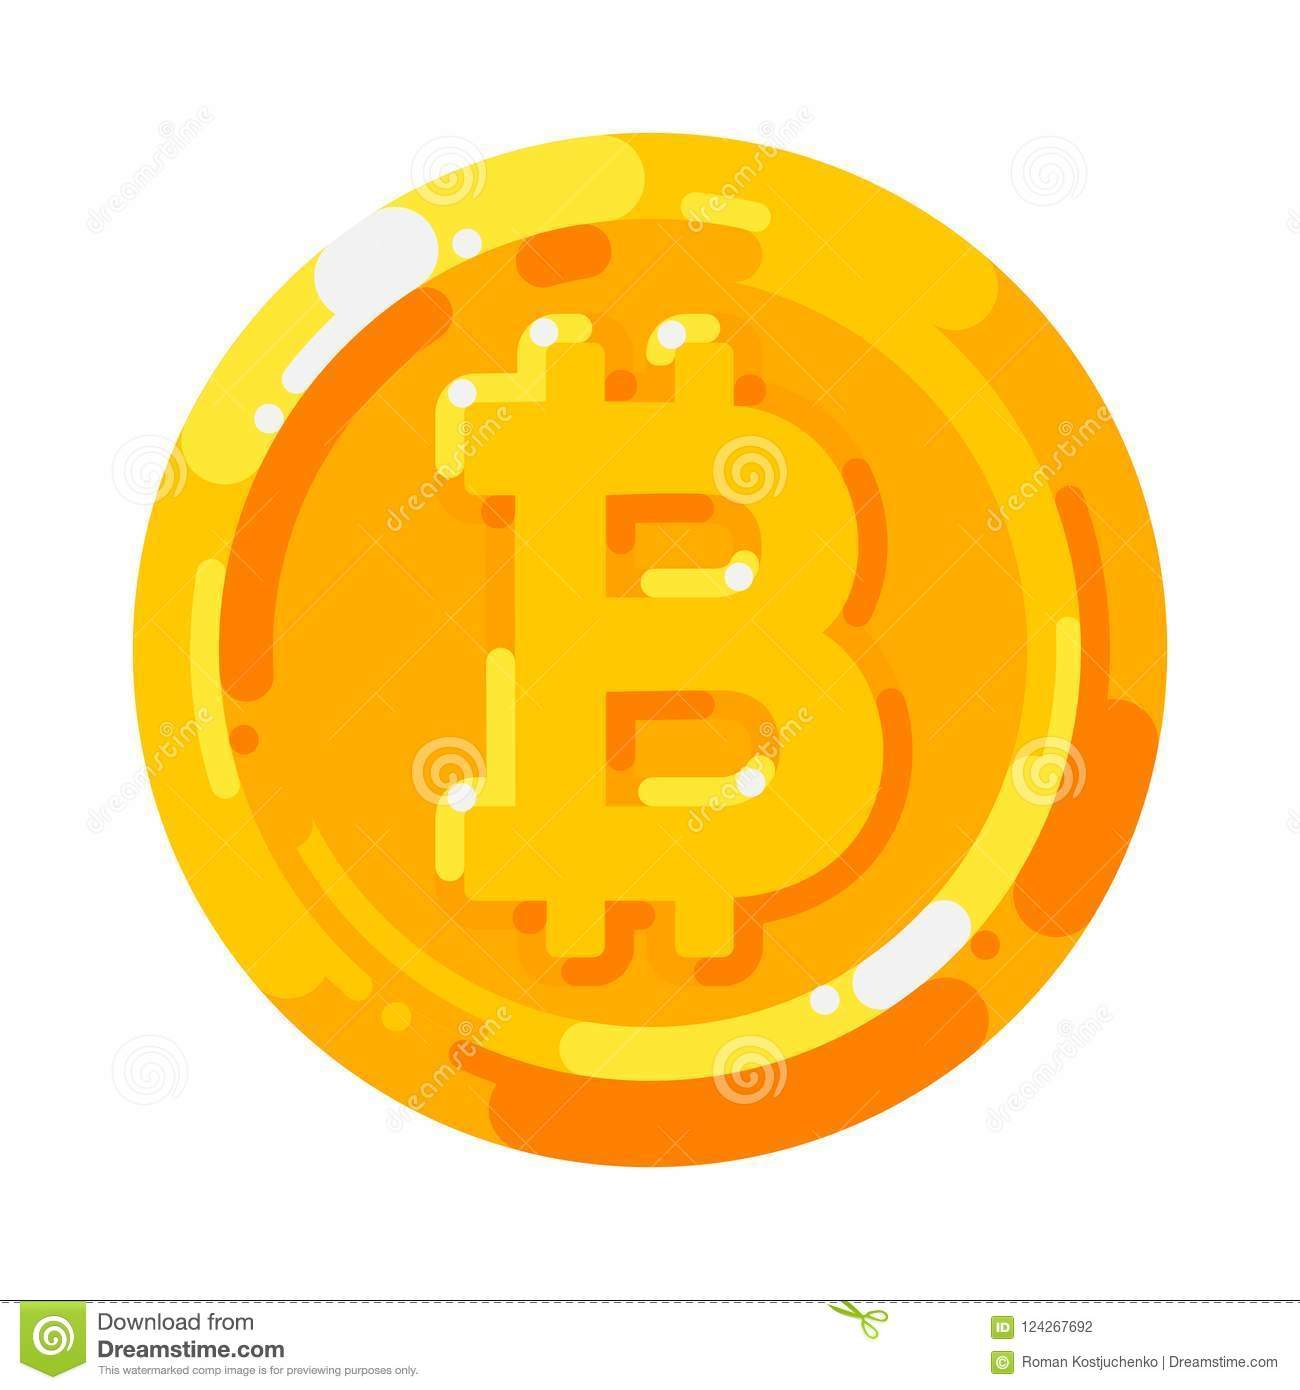 Cryptocurrency Logo Digital Money Bitcoin Blockchain Finance Symbol Stock Vector Illustration Of Earning Economy 124267692